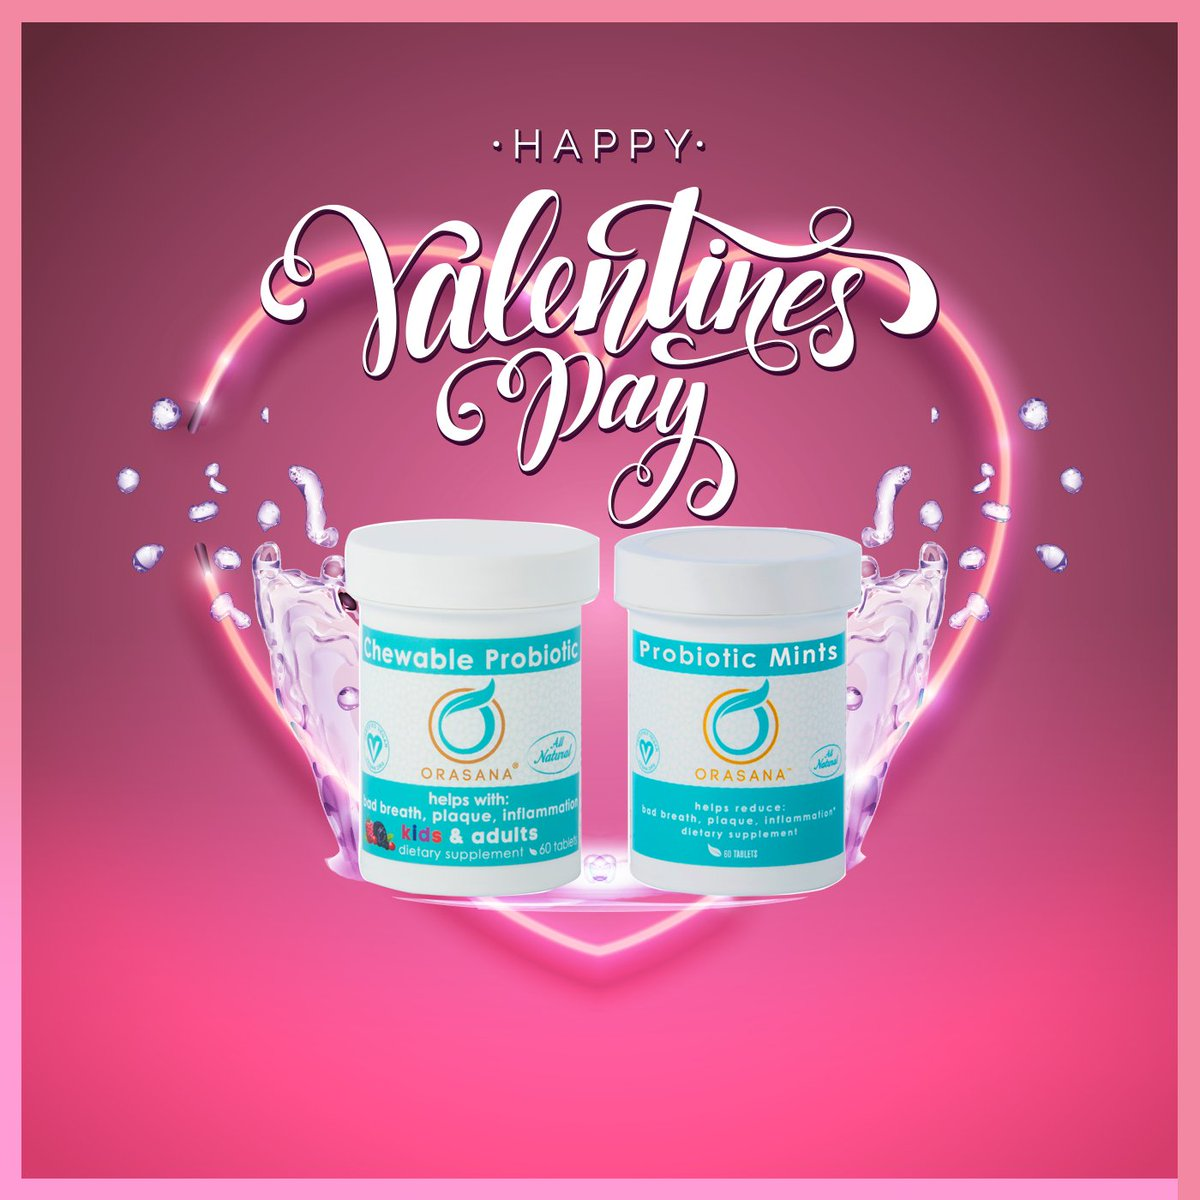 Free Shipping on all @Orasana products, today only! #HappyValentinesDay